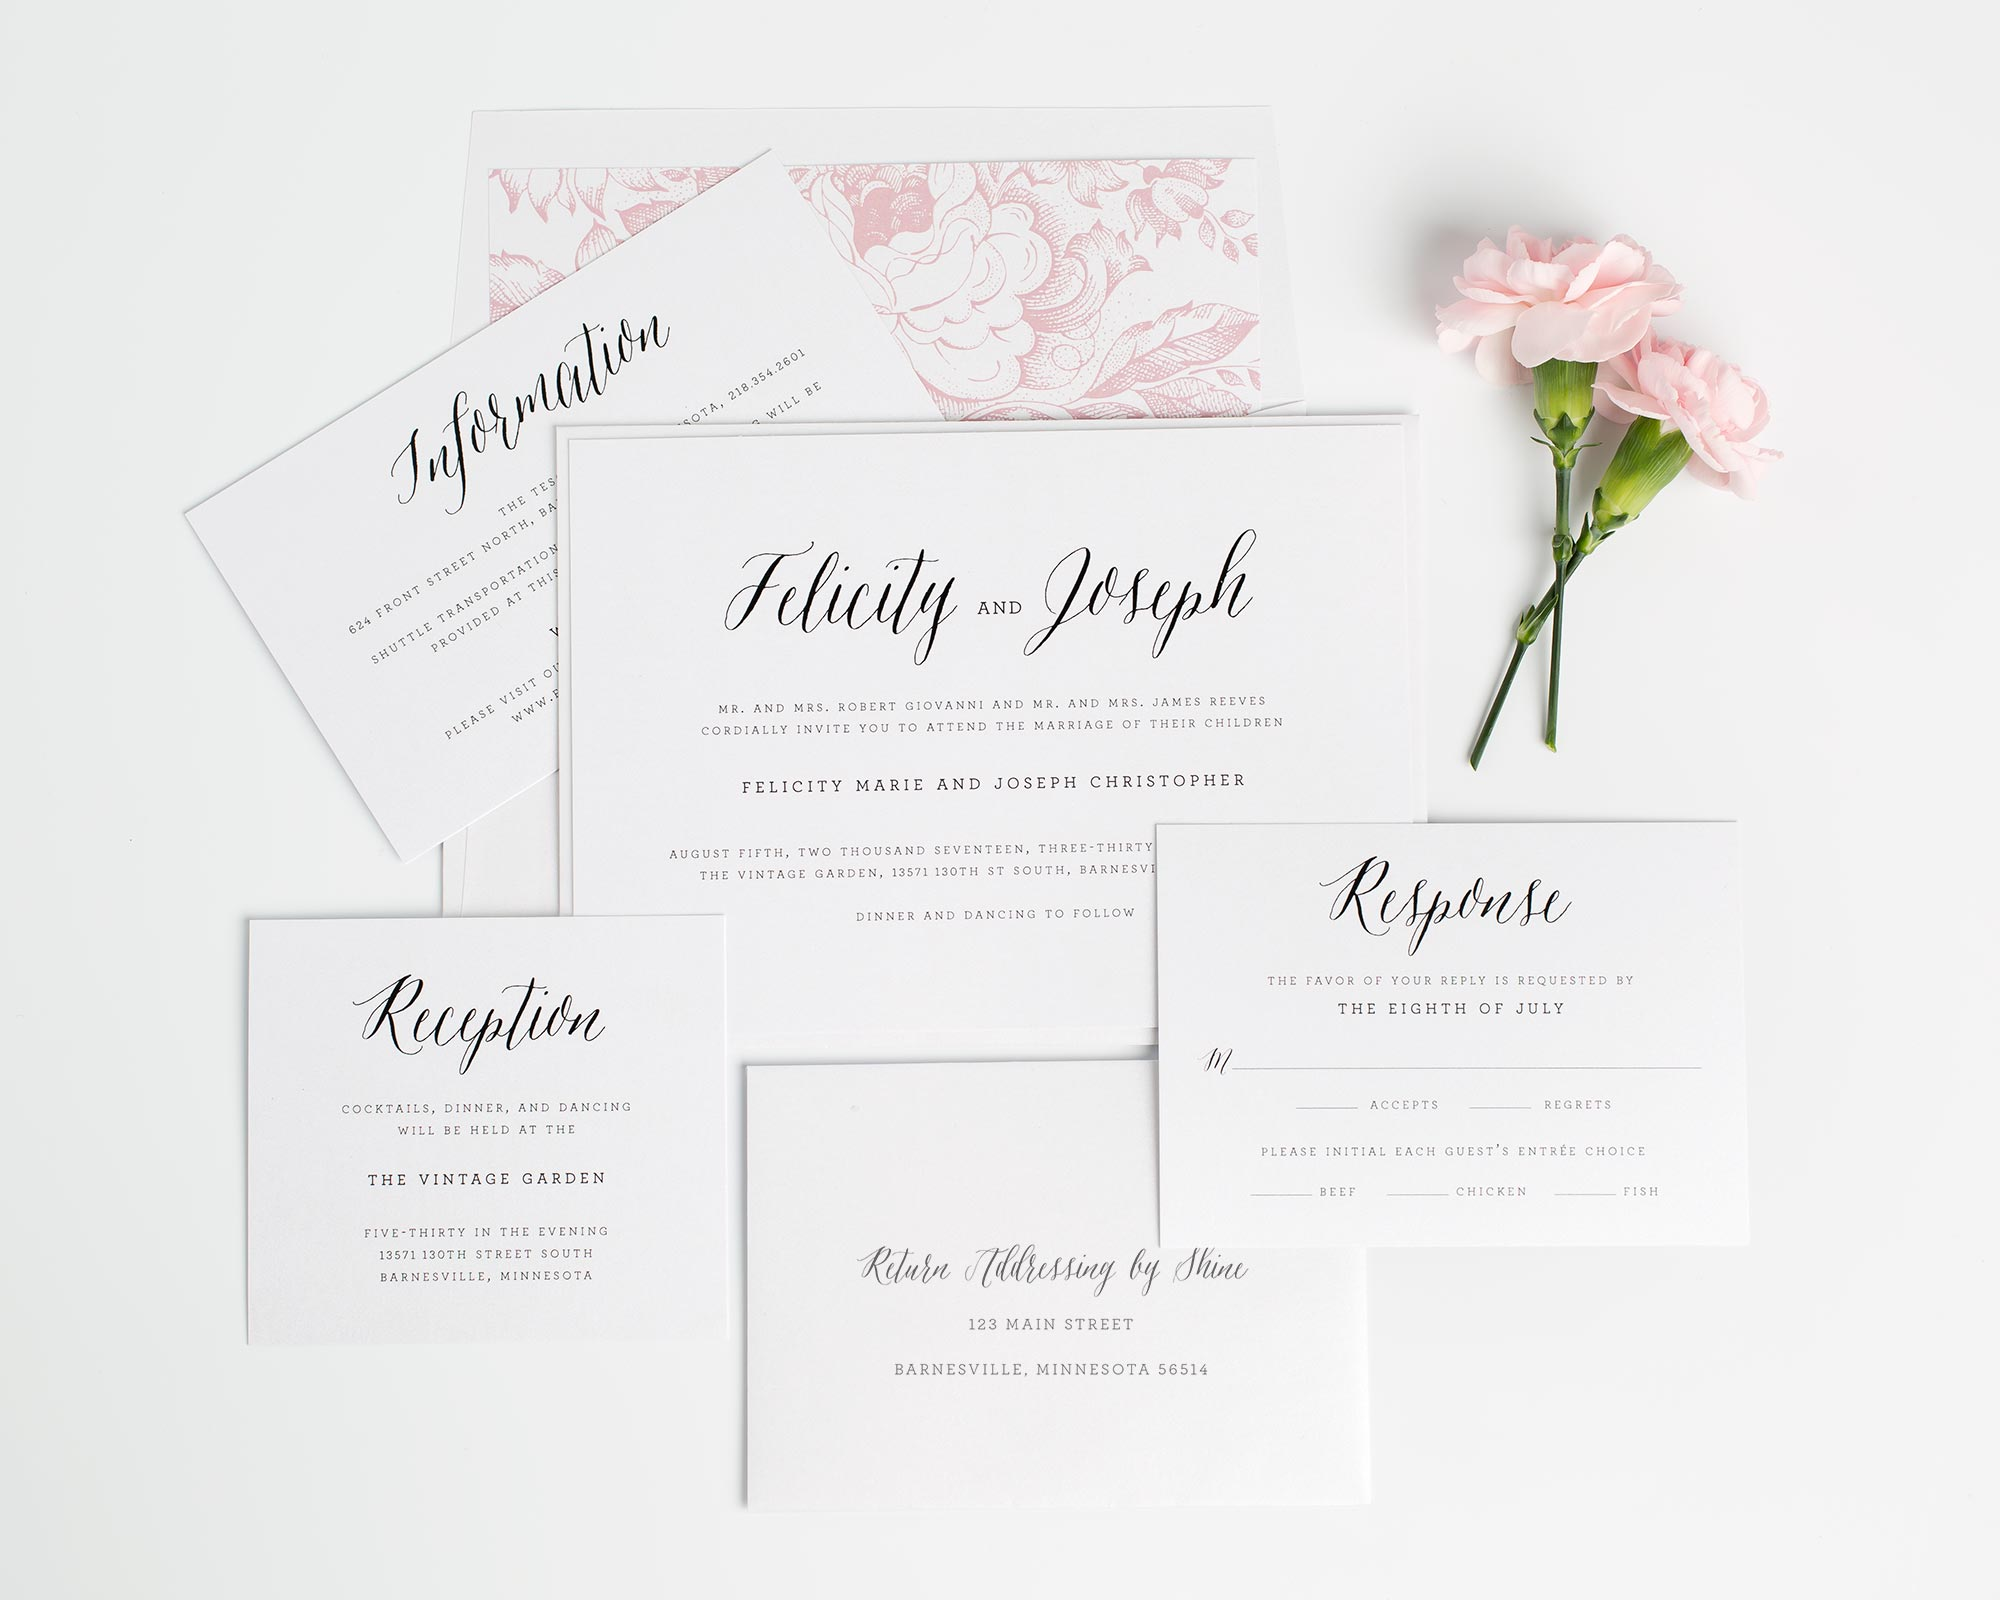 Rustic Wedding Invitations in Pink with a Floral Envelope Liner